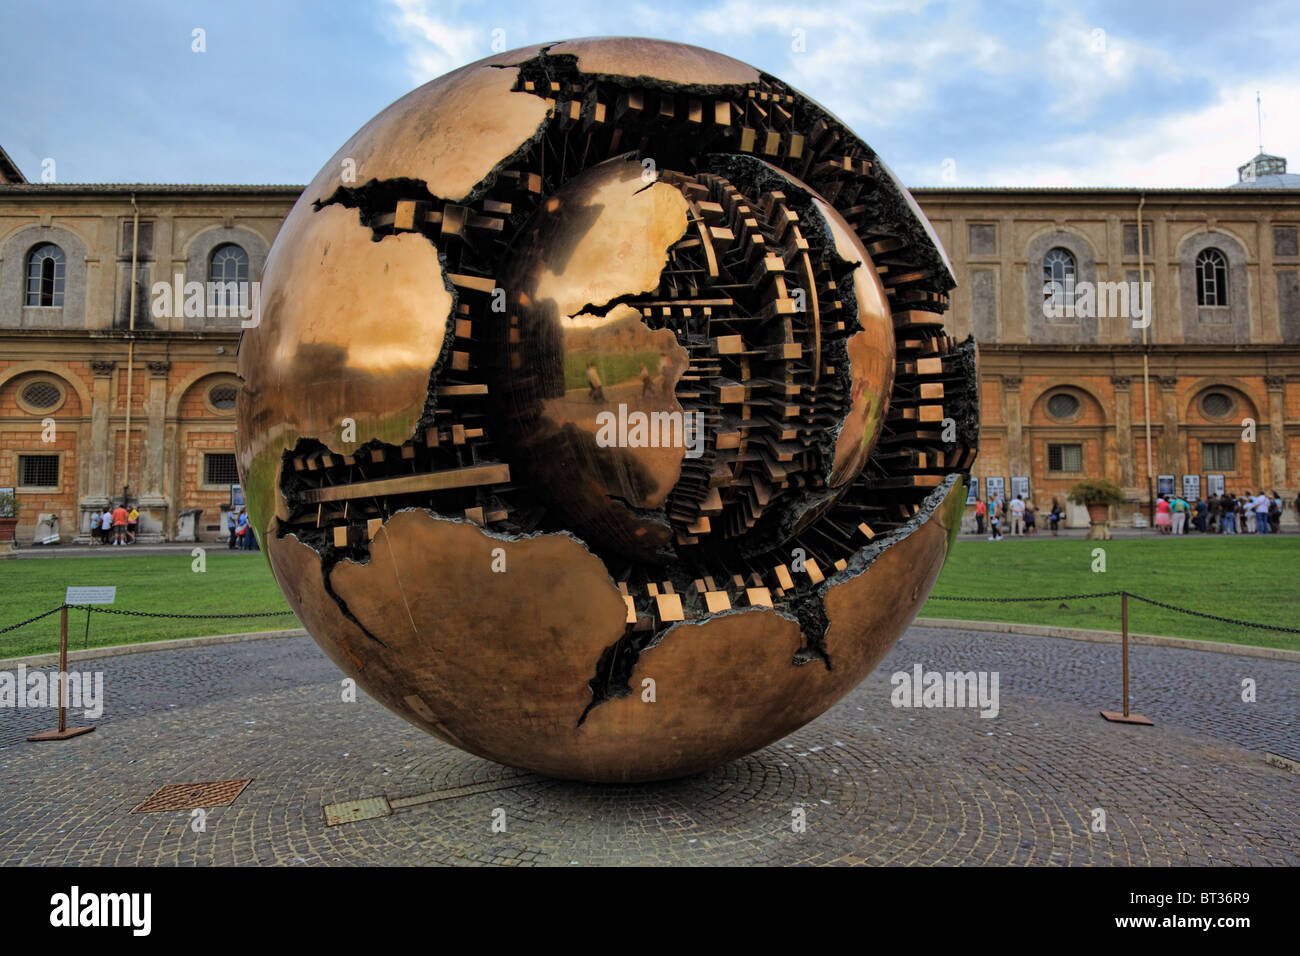 'Sphere Within Sphere' sculpture by Arnaldo Pomodoro at the Vatican museums (Italian: Musei Vaticani) - Stock Image